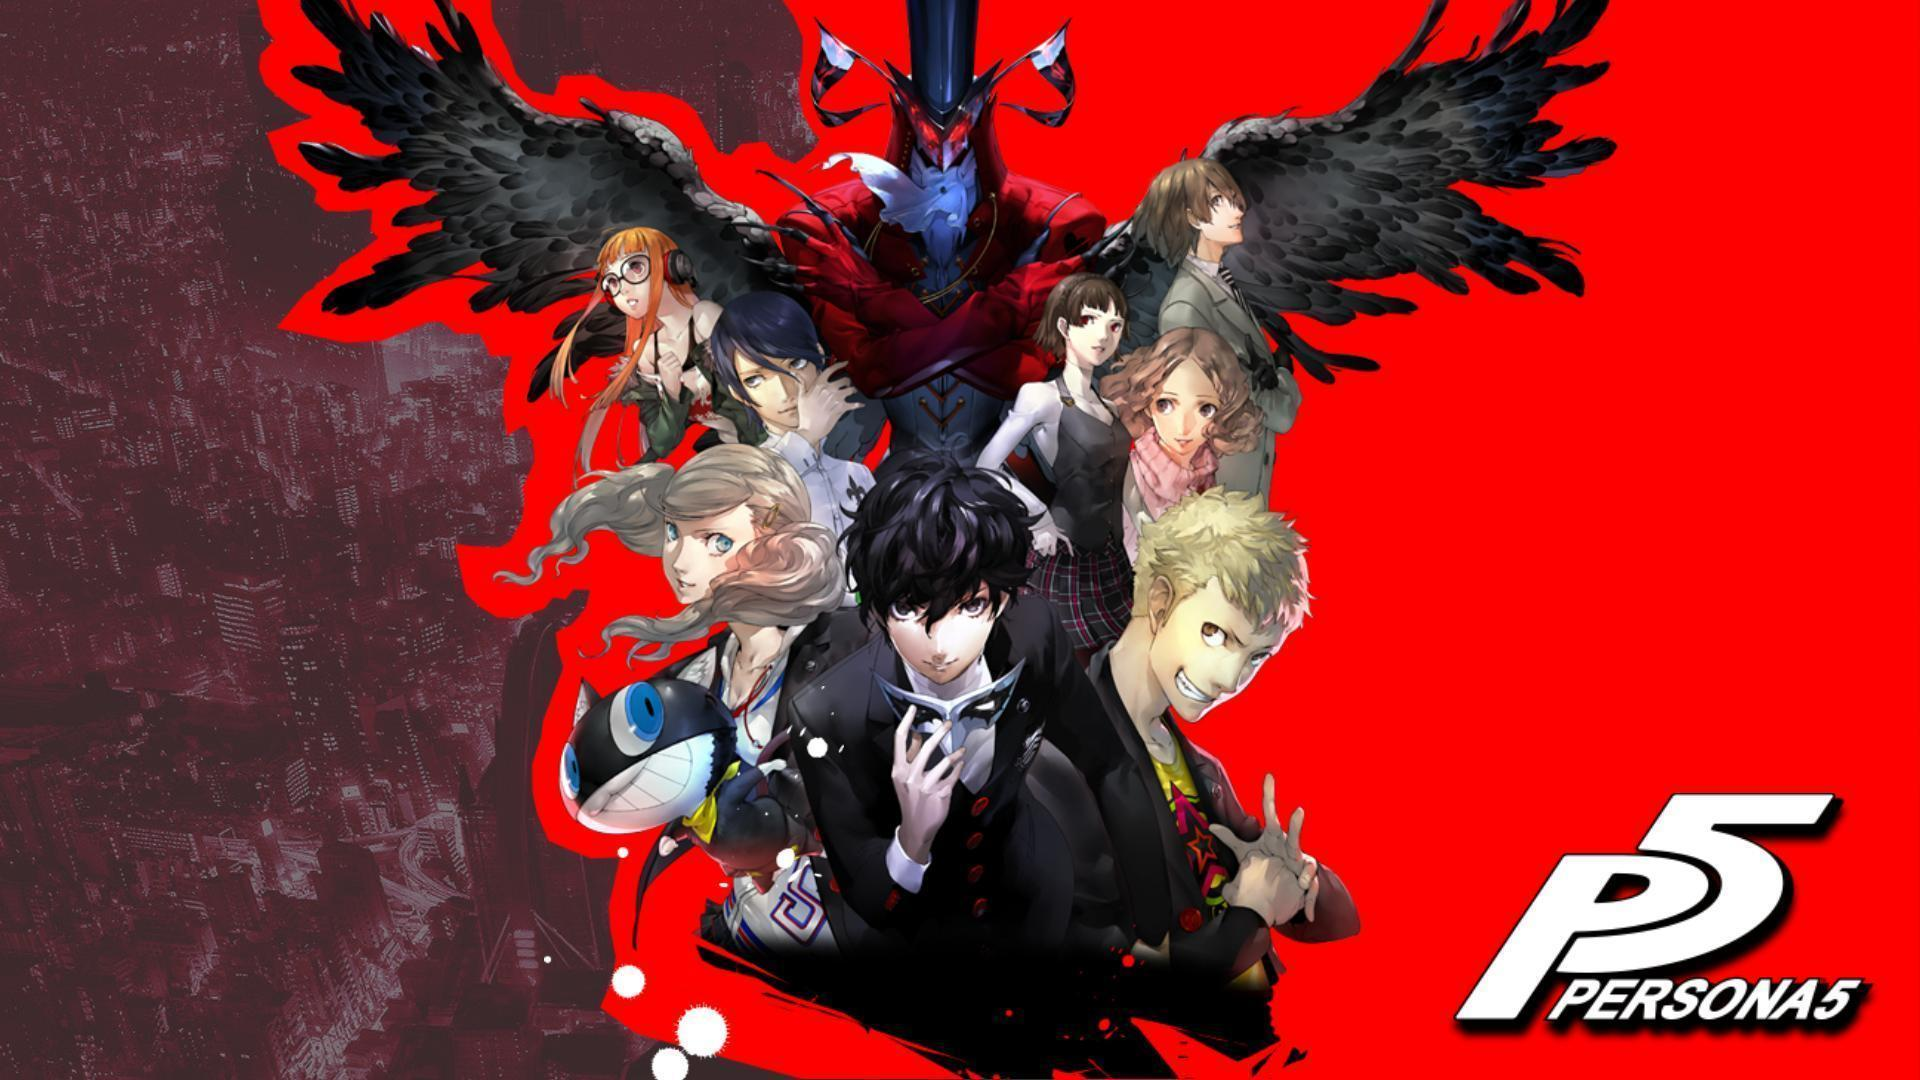 Phantom Thieves HD Wallpaper.